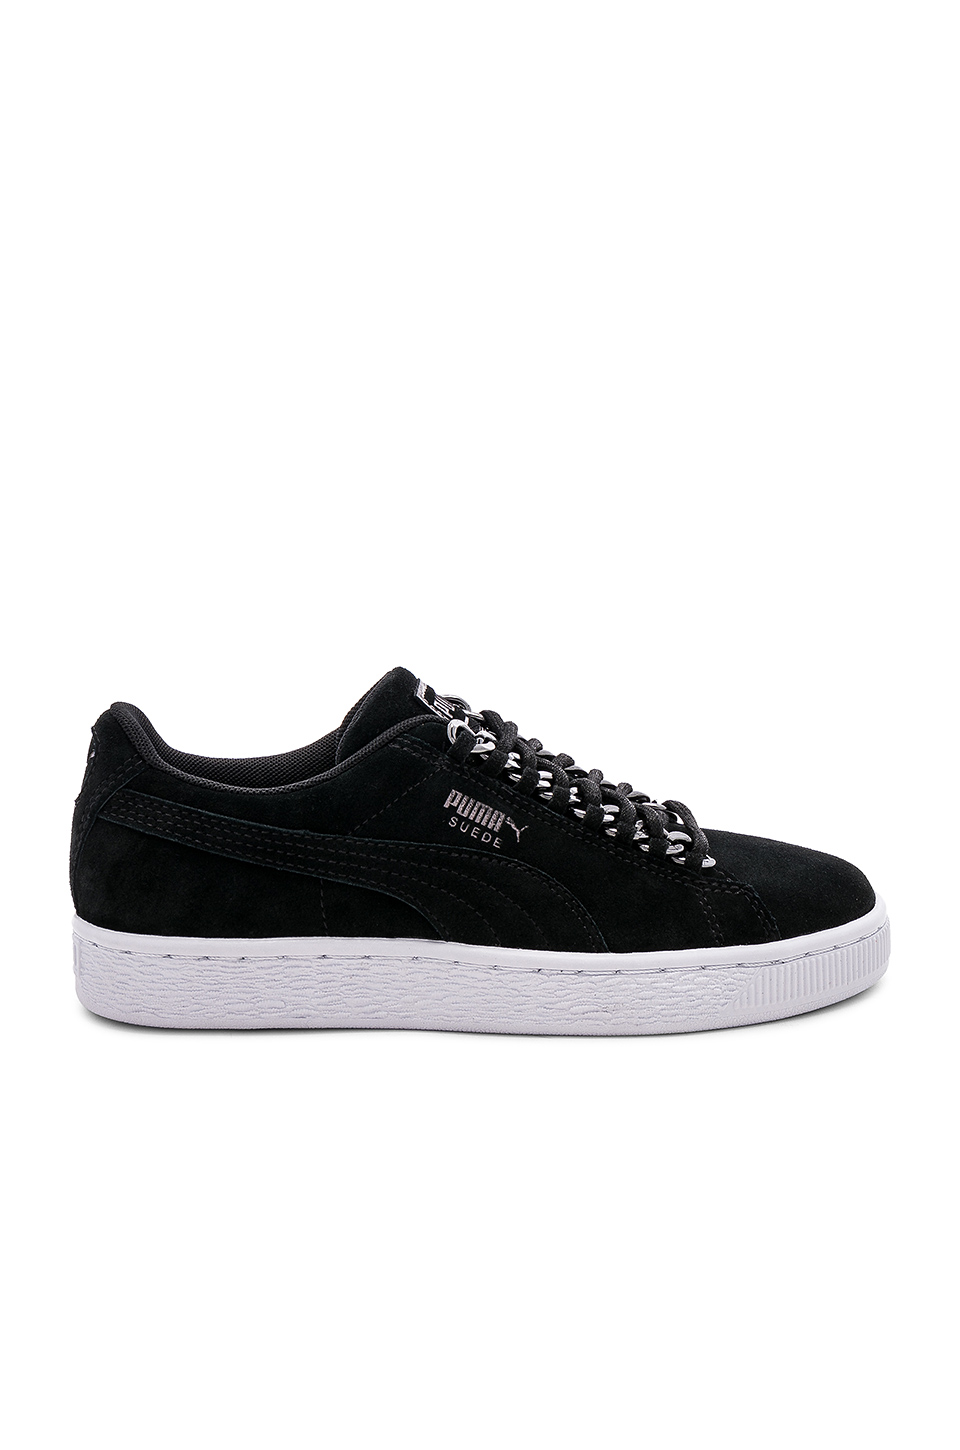 ee388af279d199 Buy Original Puma Suede Classic x Chain Sneaker at Indonesia